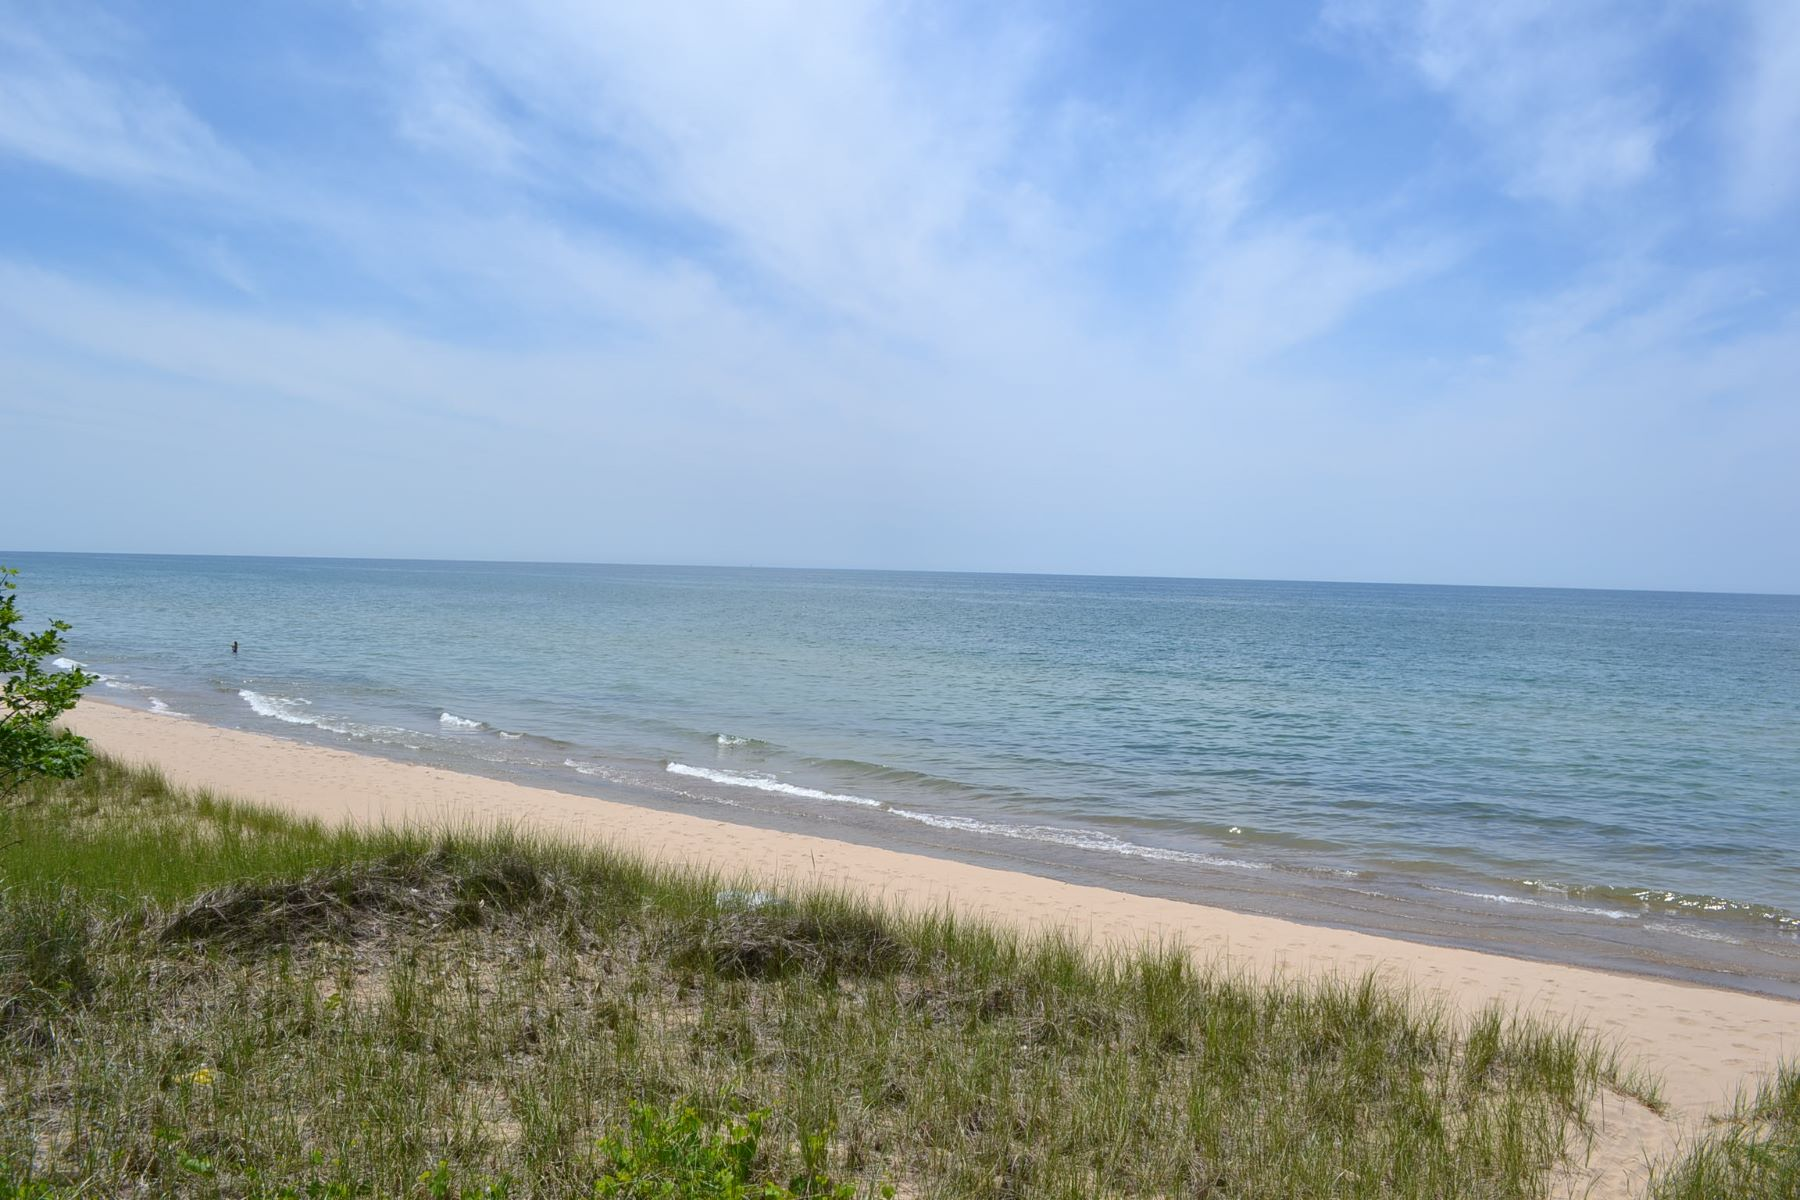 Land for Sale at Stunning Buildable Lot on the Lakeshore 2849 Lakeshore Drive Fennville, Michigan 49408 United States